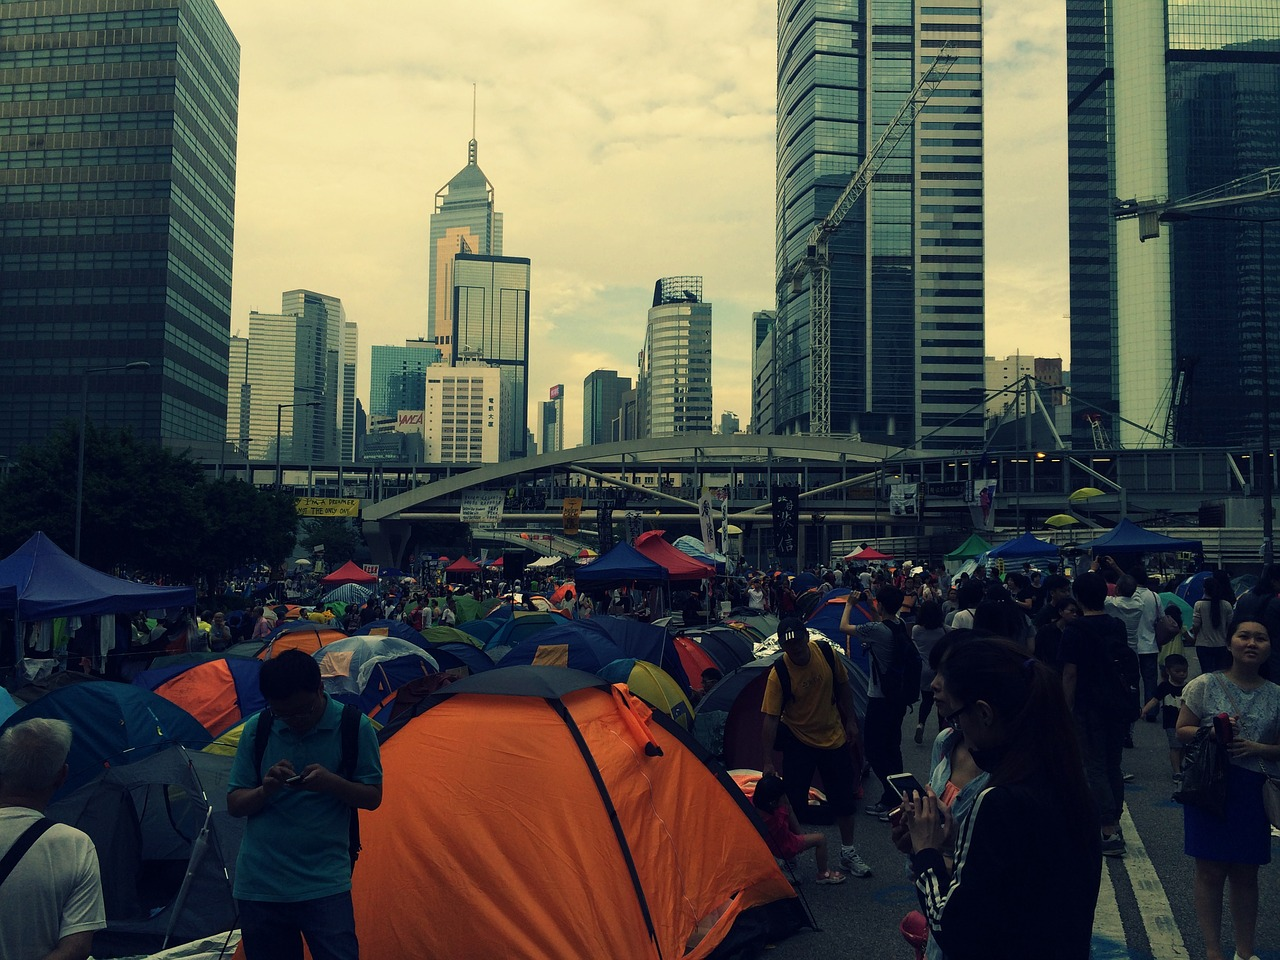 Reasons behind ongoing Hong Kong protests 1